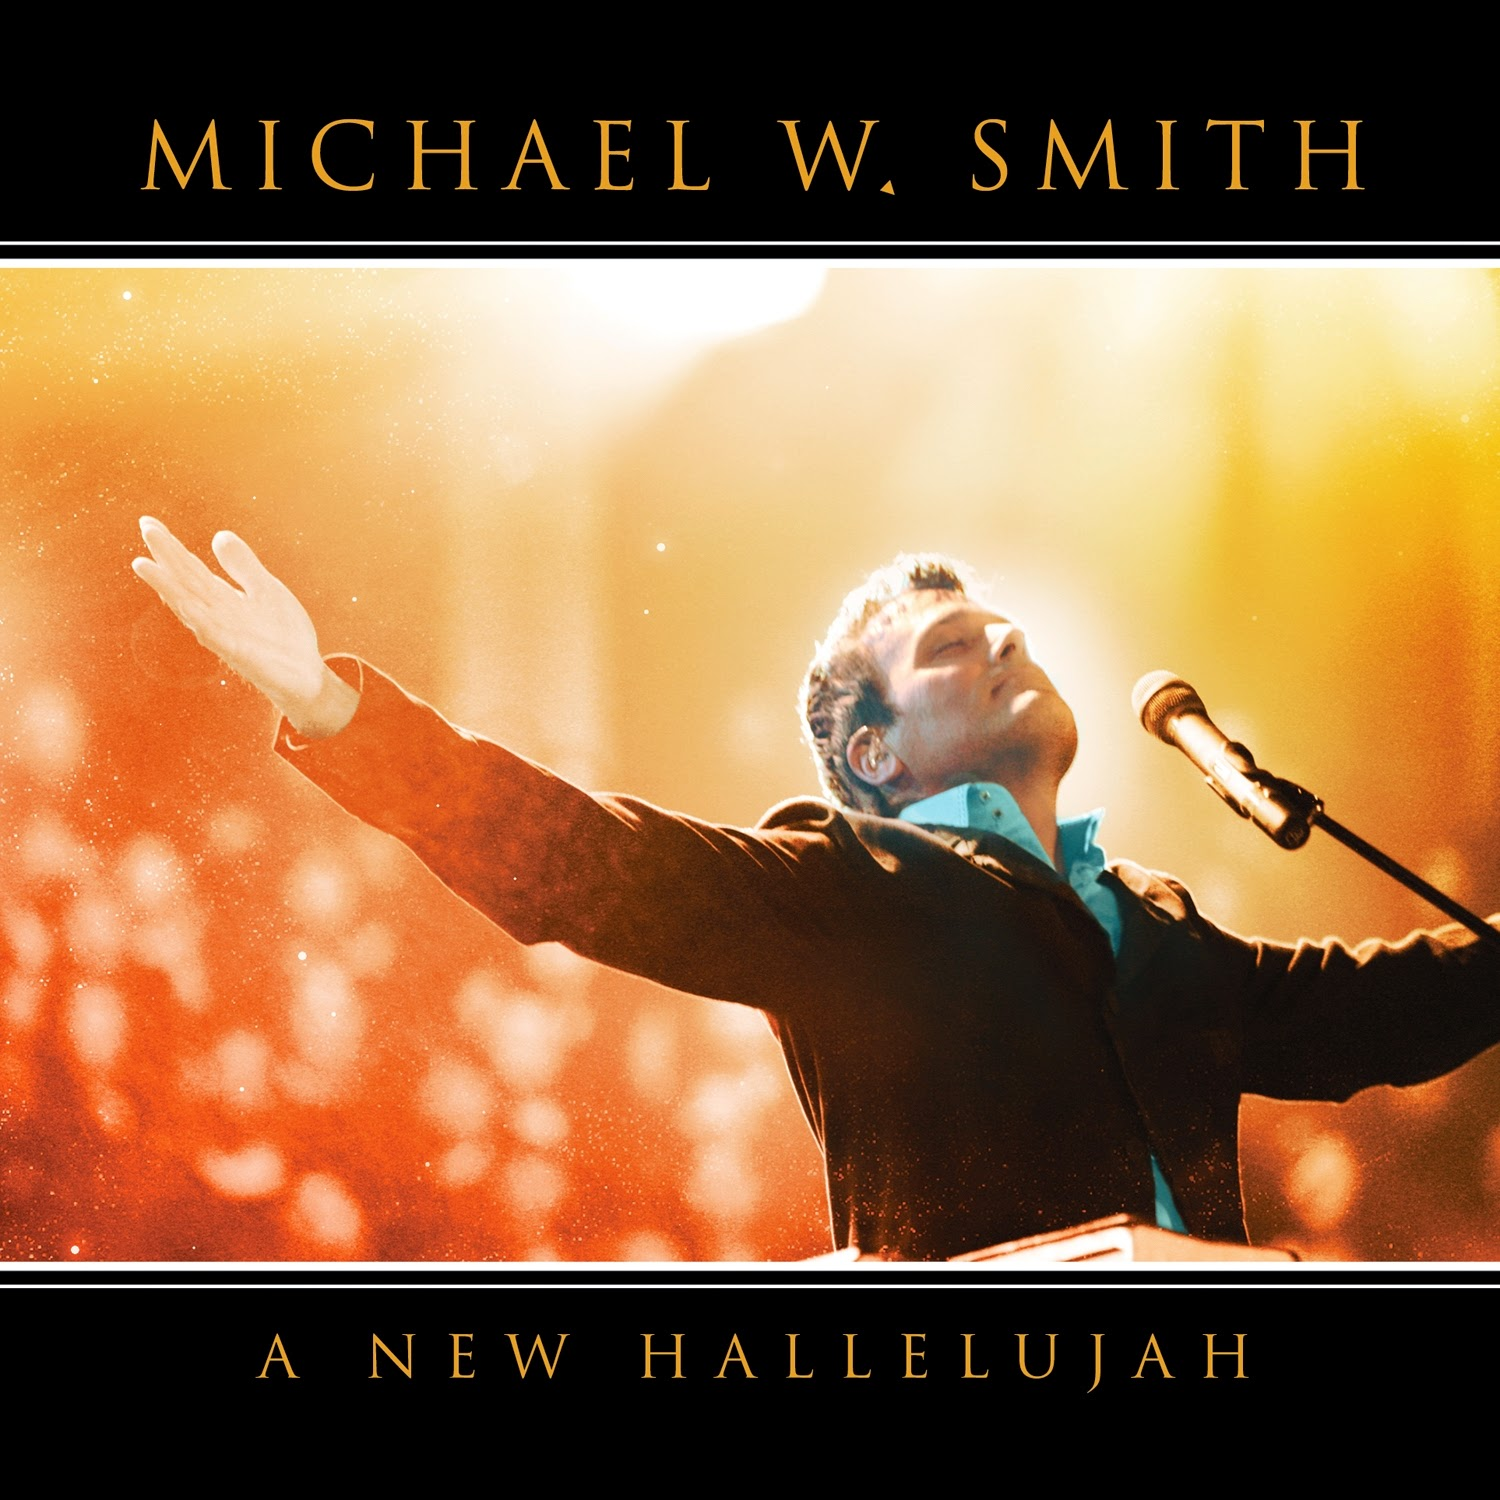 A new hallelujah [music download]: michael w. Smith.